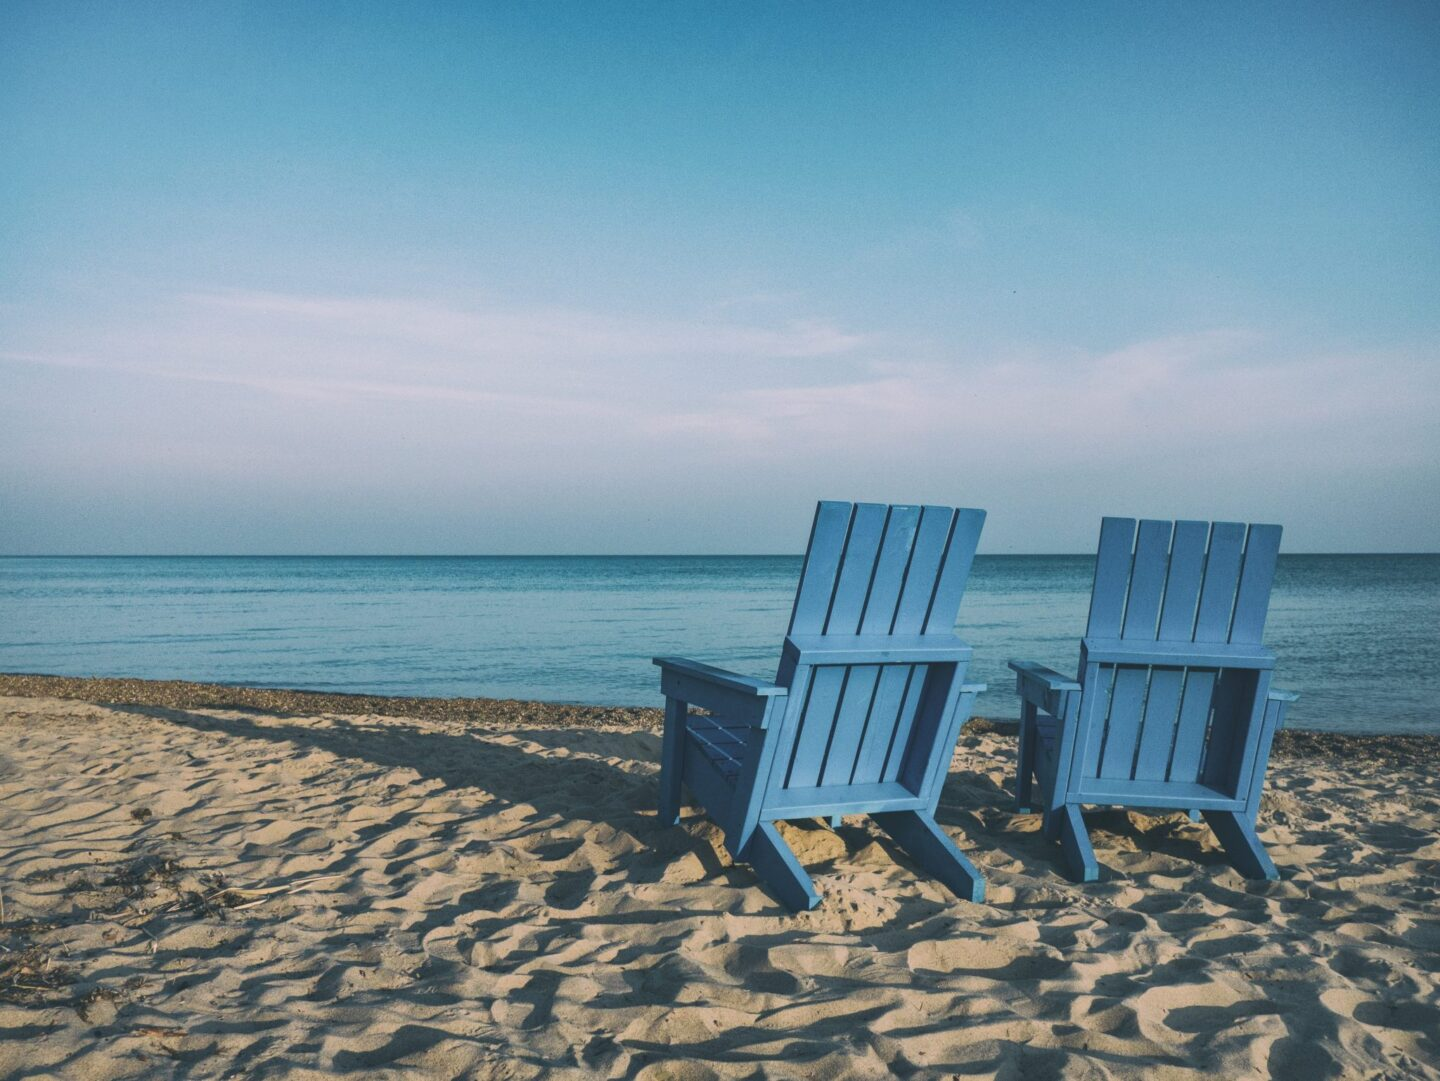 Plan to Travel After Retirement? What Will It Cost?